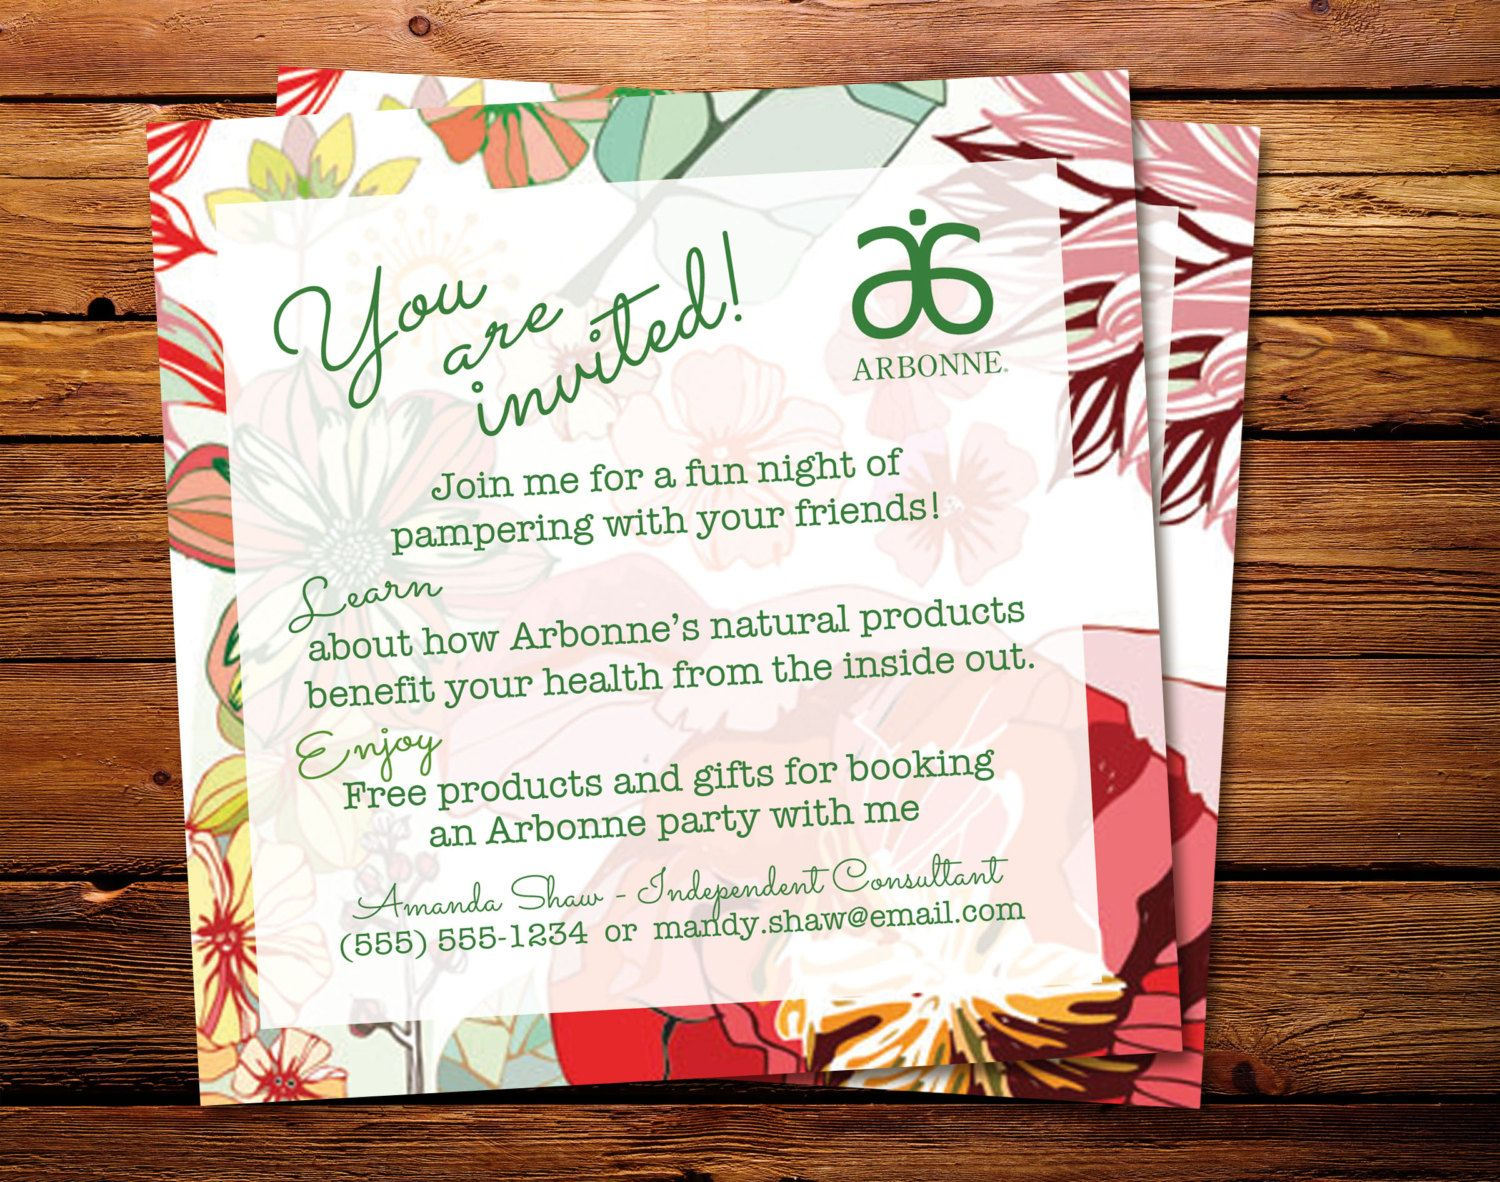 Interesting arbonne party invitation sample launch party examples interesting arbonne party invitation sample launch party examples arbonne invitation templates 8942 altavistaventures Gallery